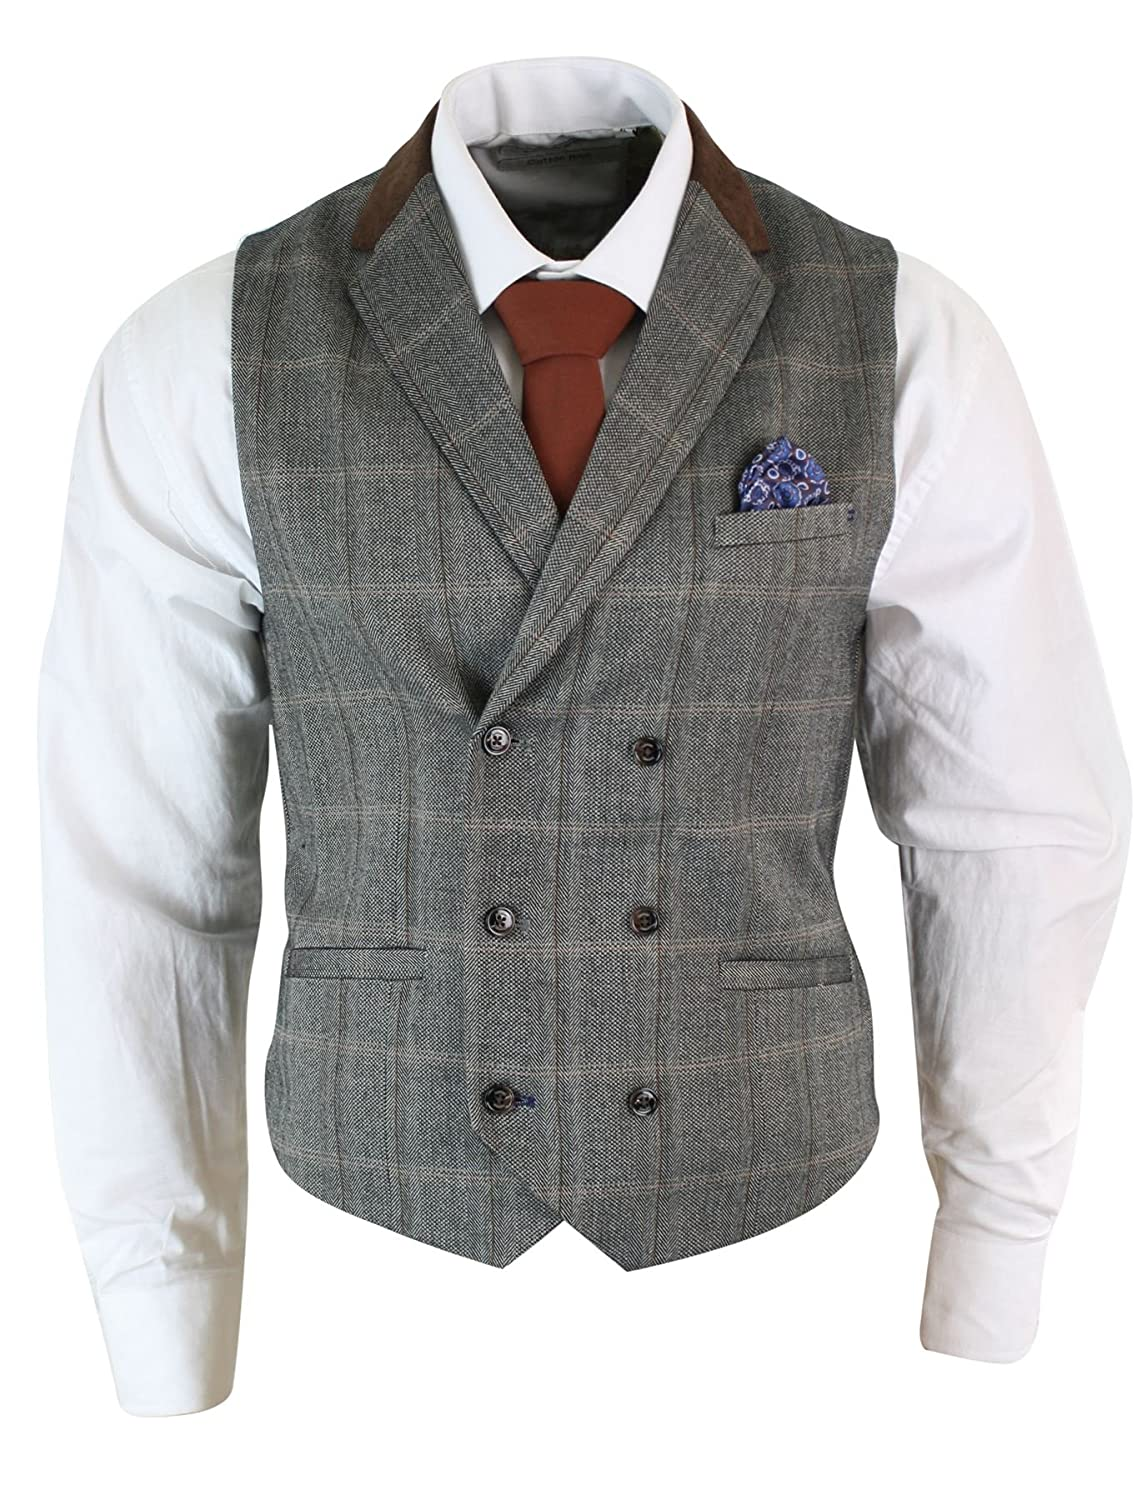 1920s Style Mens Vests Mens Double Breasted Herringbone Tweed Peaky Blinders Vintage Check Waistcoat £34.99 AT vintagedancer.com